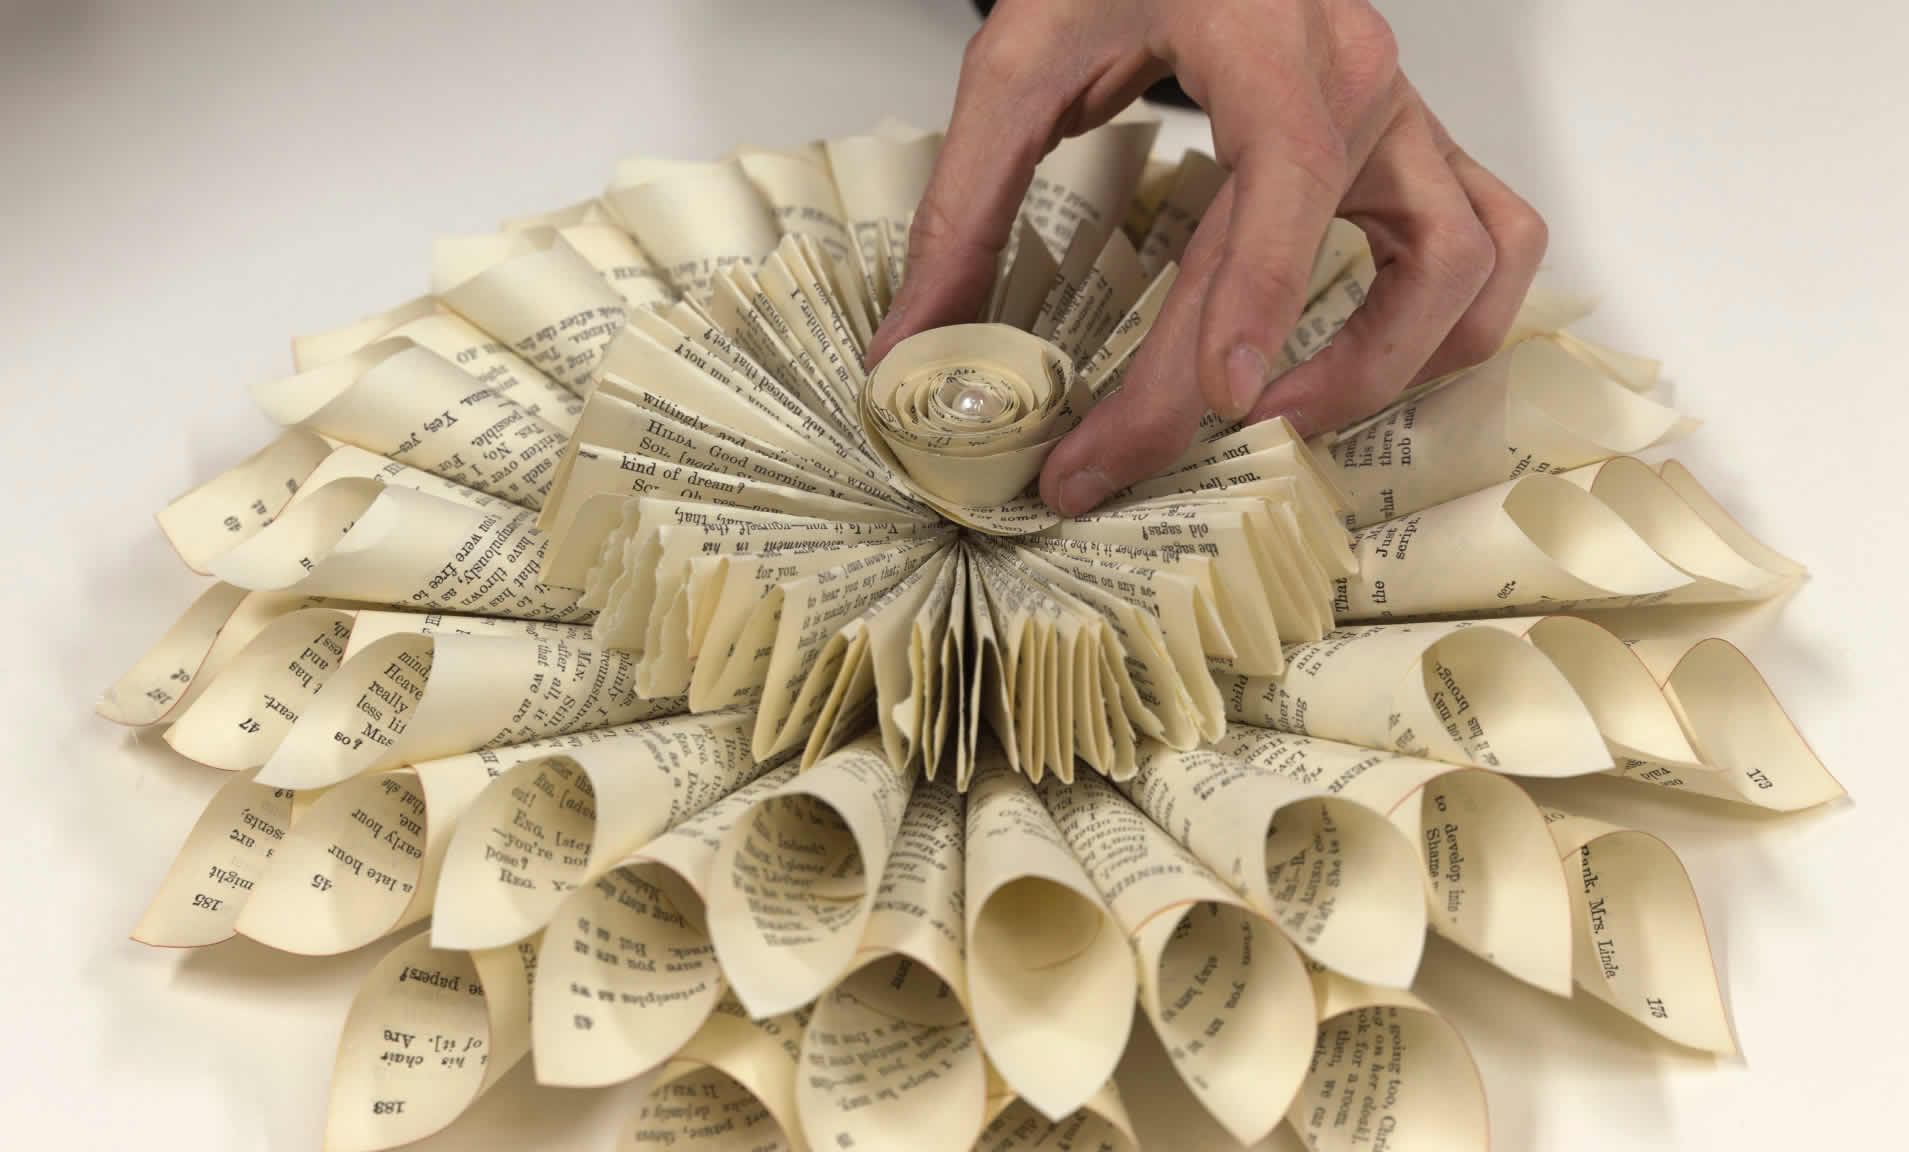 Make a book page wreath in a few easy steps